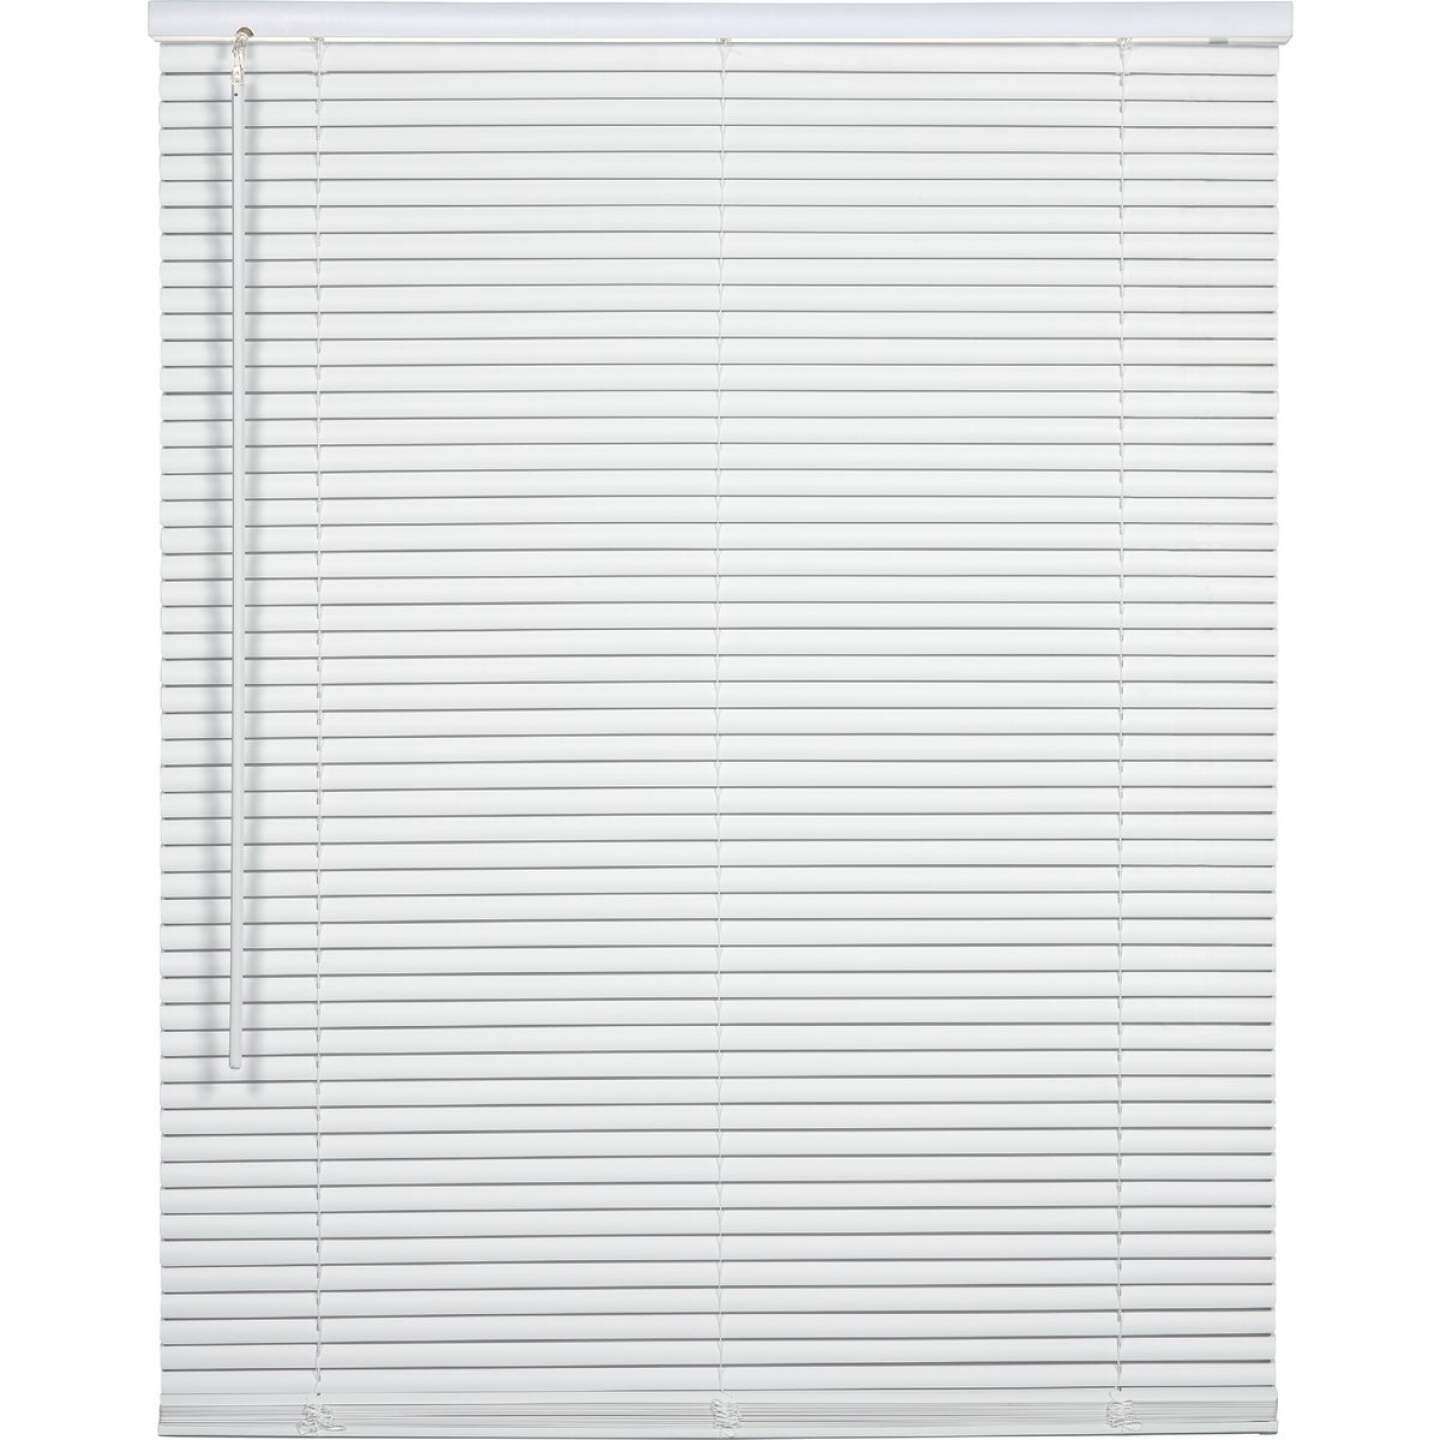 Home Impressions 60 In. x 64 In. x 1 In. White Vinyl Light Filtering Cordless Mini Blind Image 1